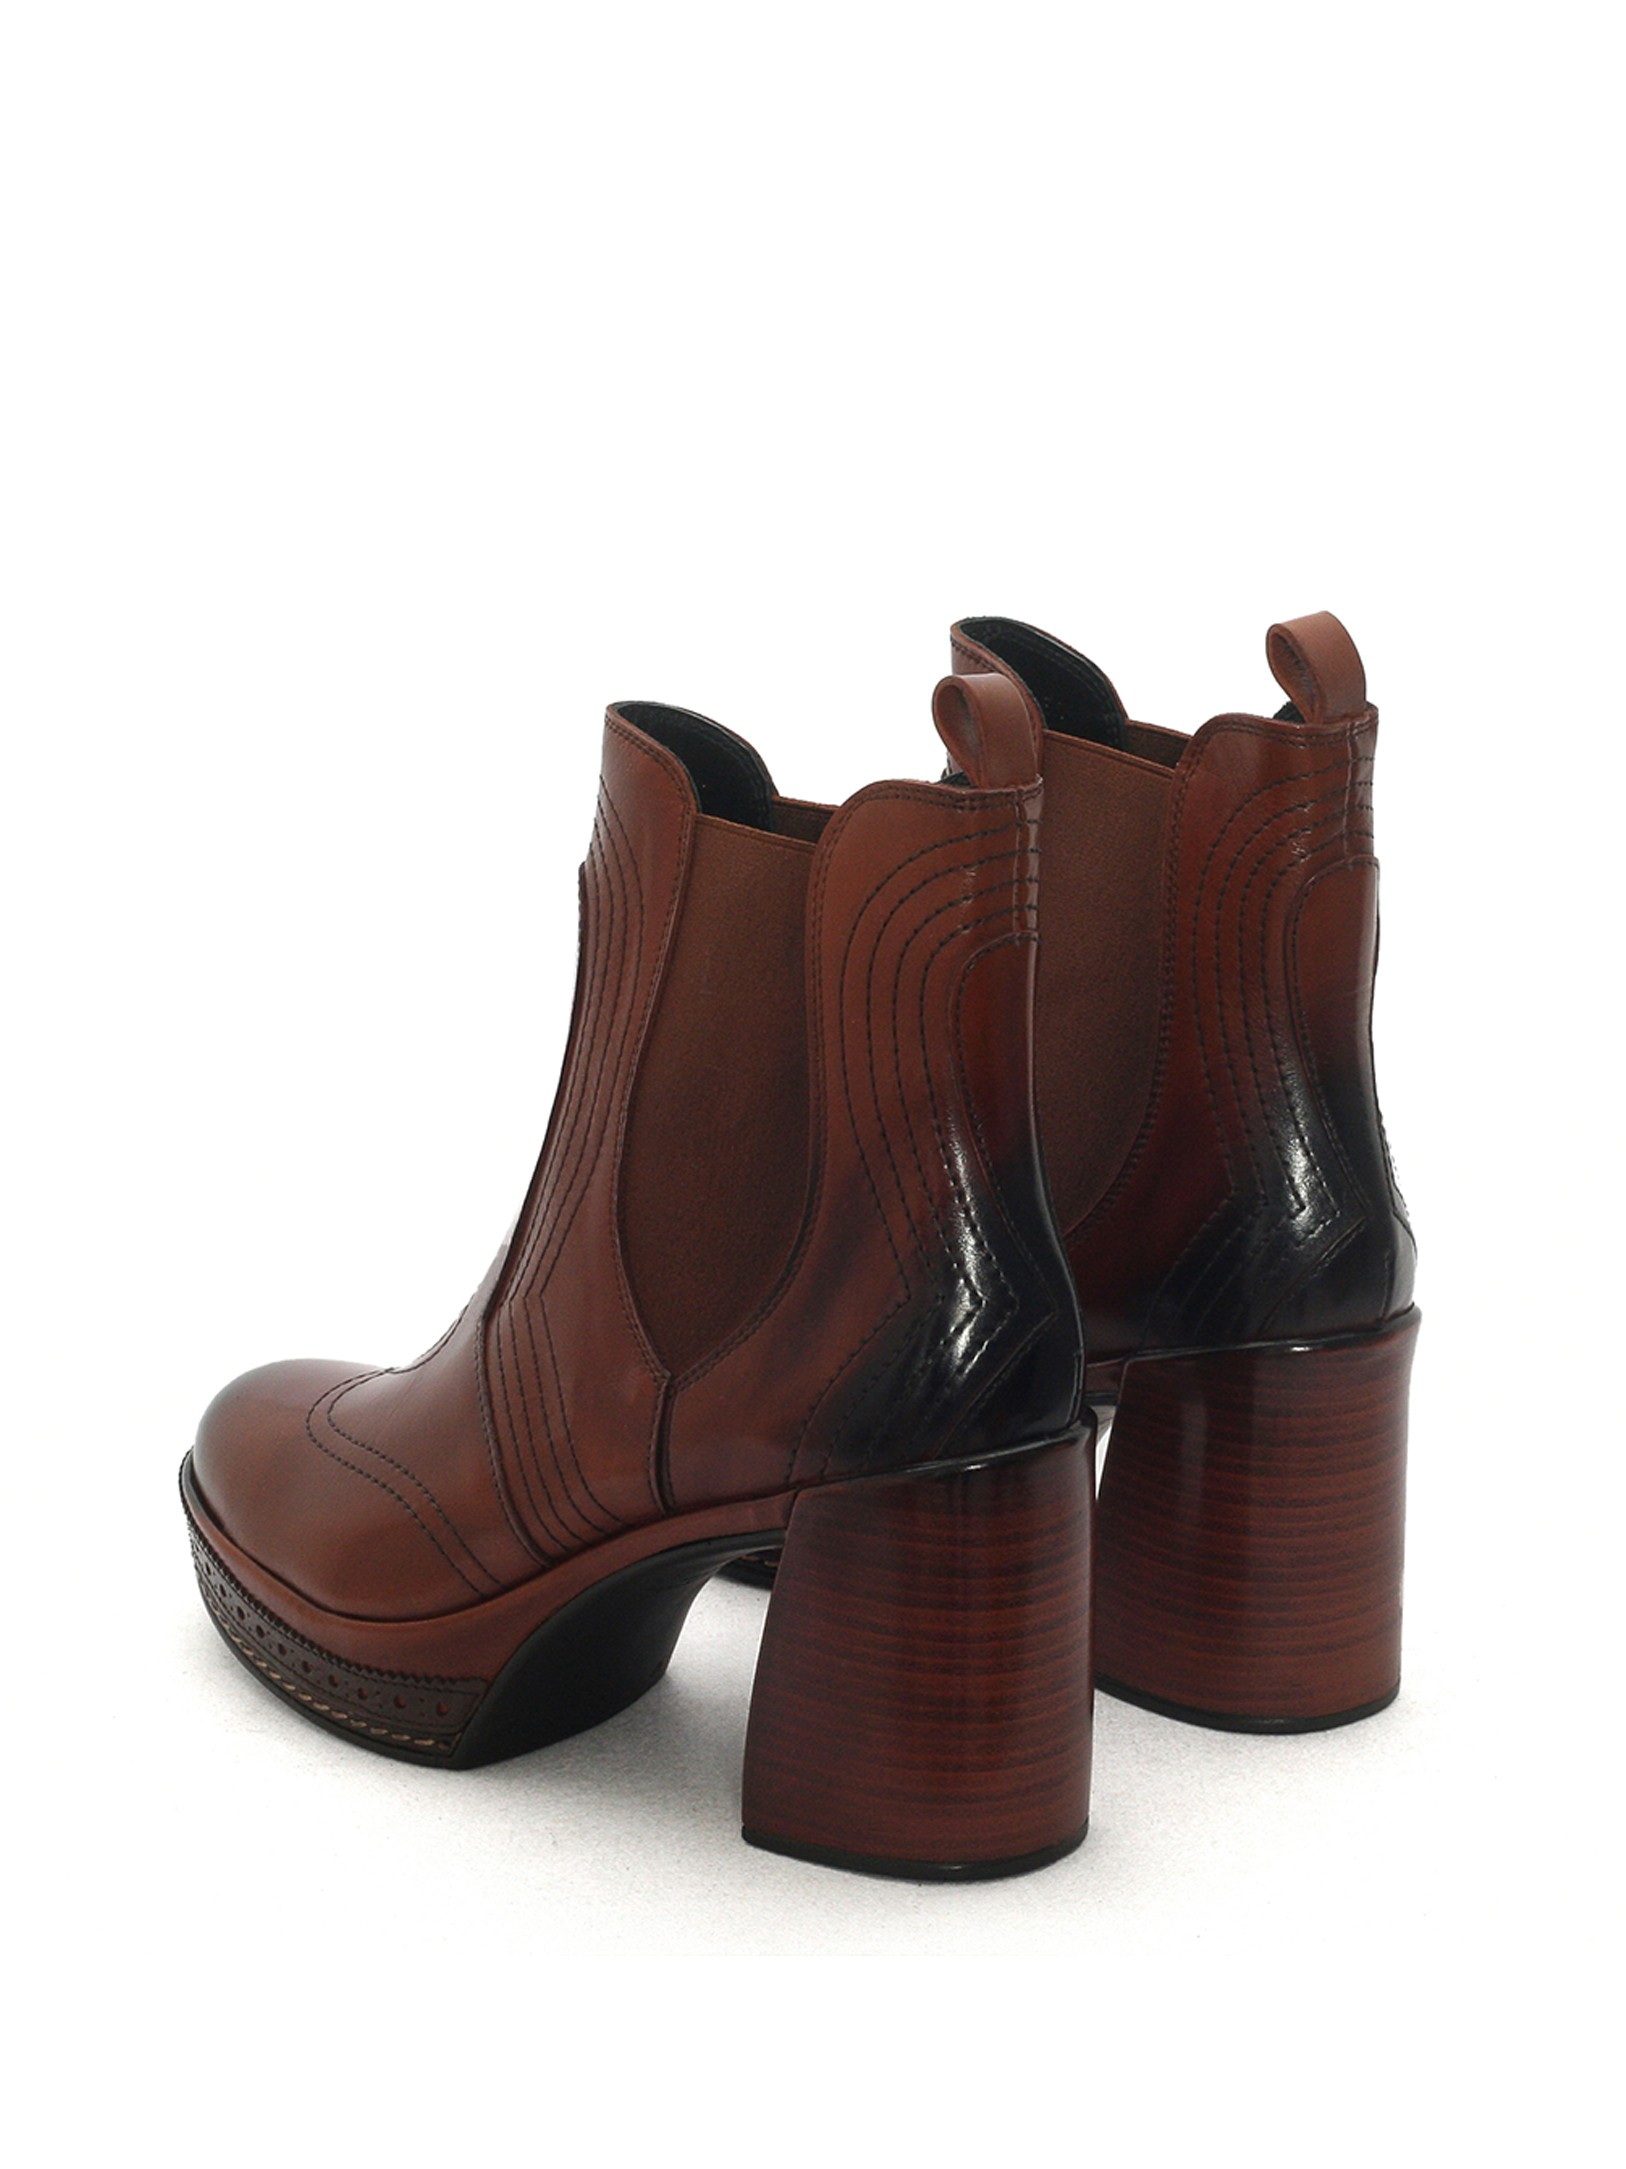 AMELIA TOFFE NEPAL ANKLE BOOT